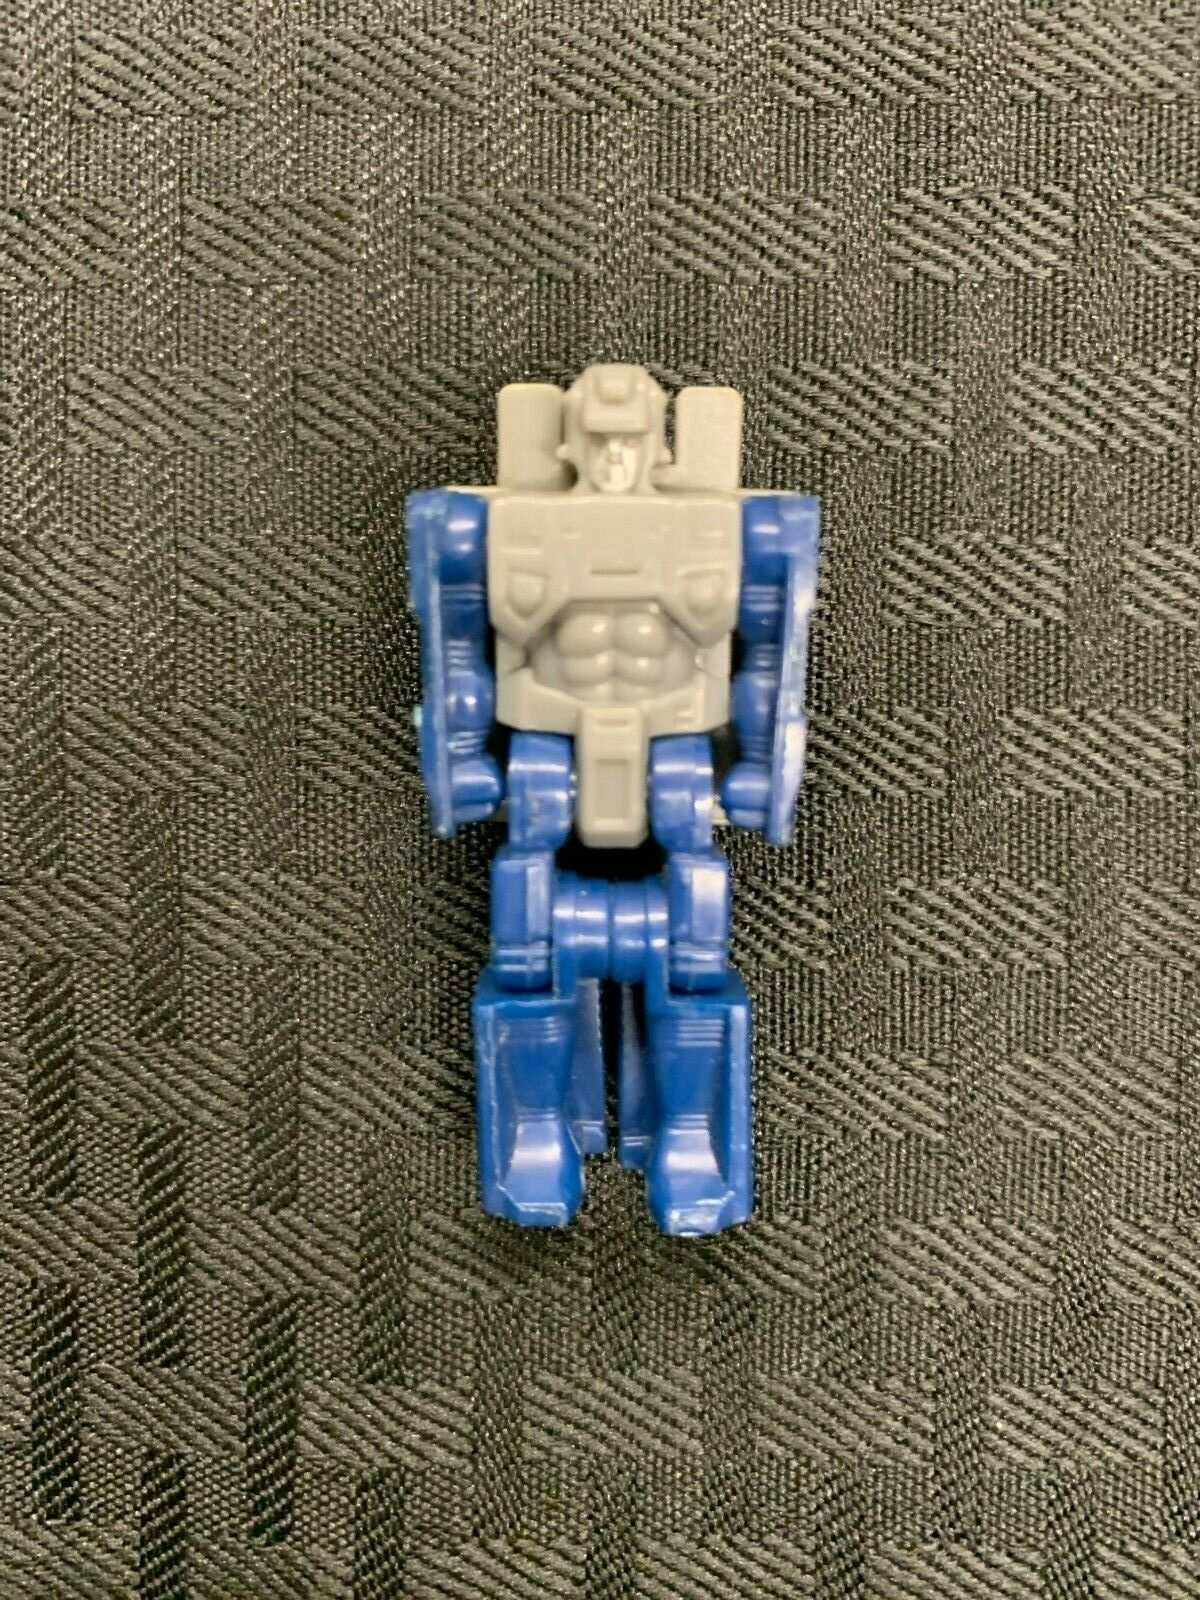 G1 Transformers Vintage (Hasbro 1987) Headmaster Fortress Maximus Spike